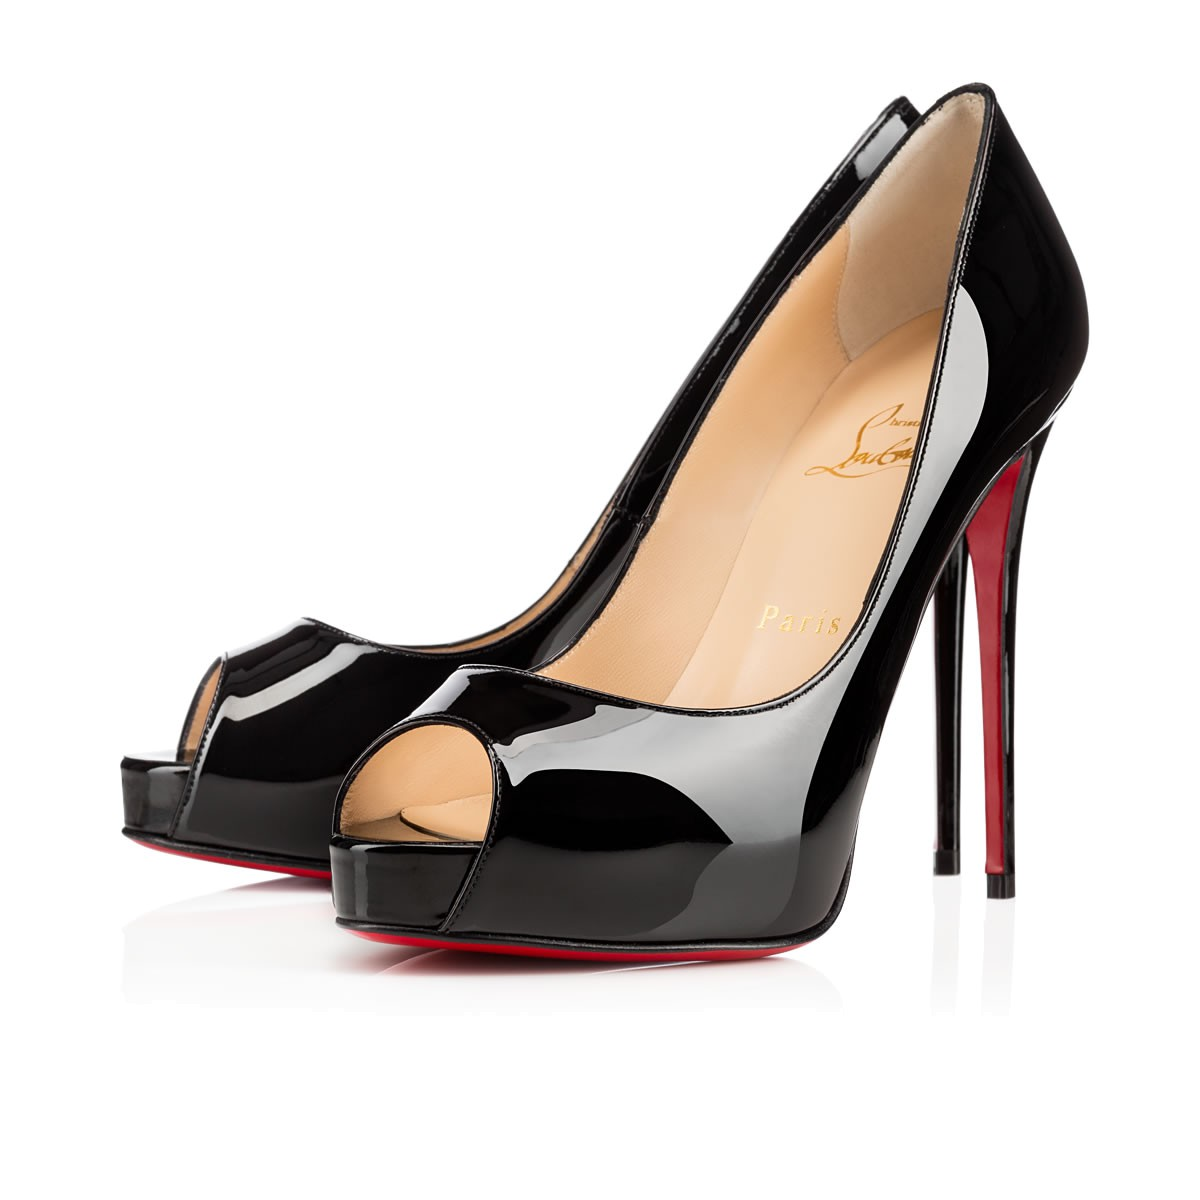 best authentic d6333 32a88 New Very Prive 120 Black Patent Leather - Women Shoes - Christian Louboutin